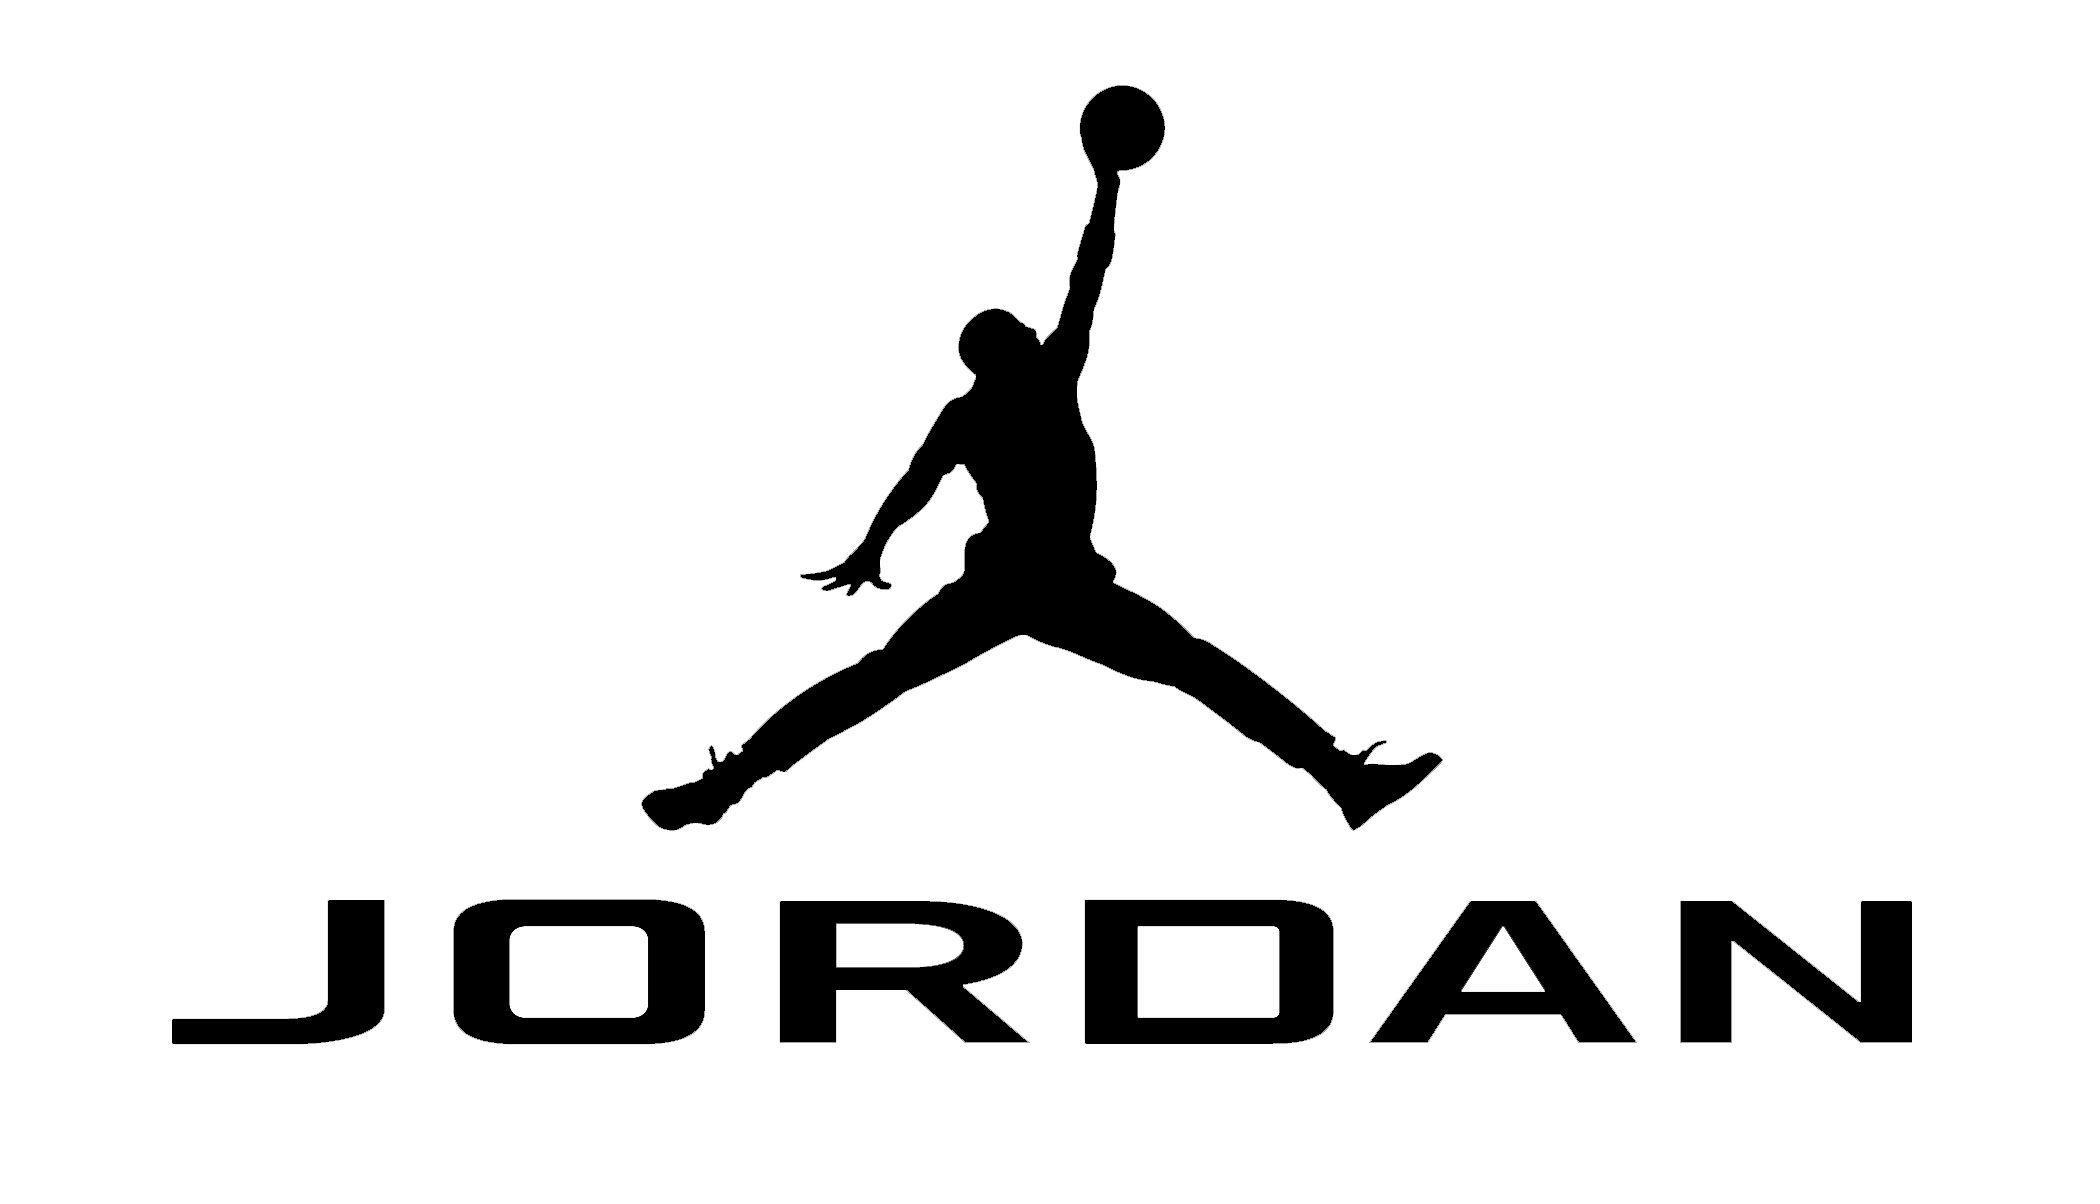 8643b1003f2 I run a shoe and clothing brand, originally called Jordan. It is a part of  the much larger corporation Nike. I was endorsed by Nike early in my career  and ...